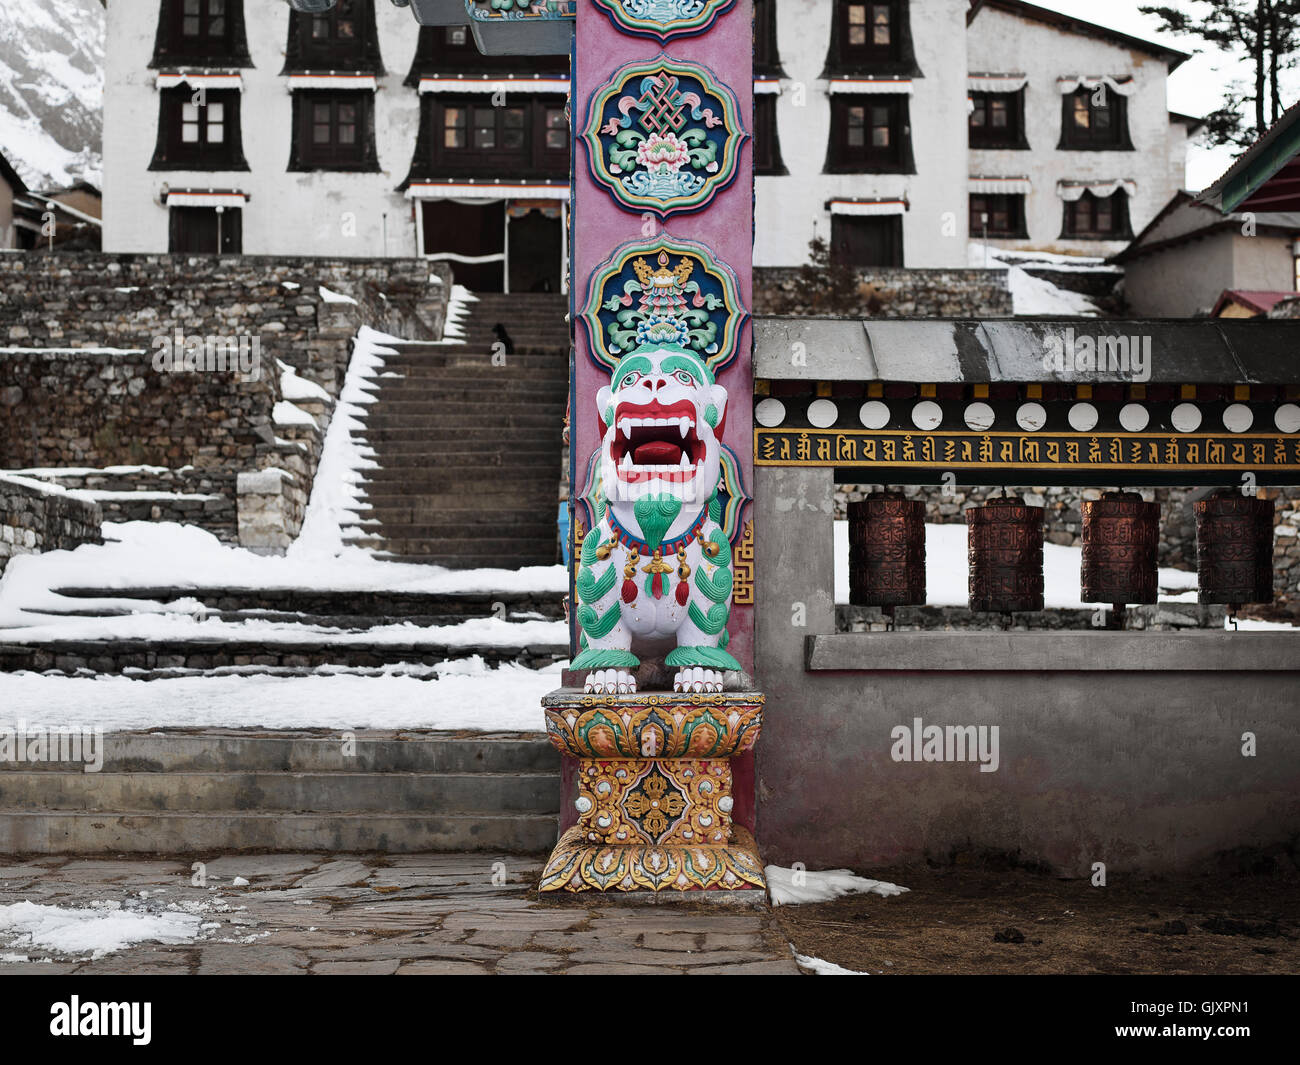 A shrine outside a monastery in Tengboche, Nepal - Stock Image